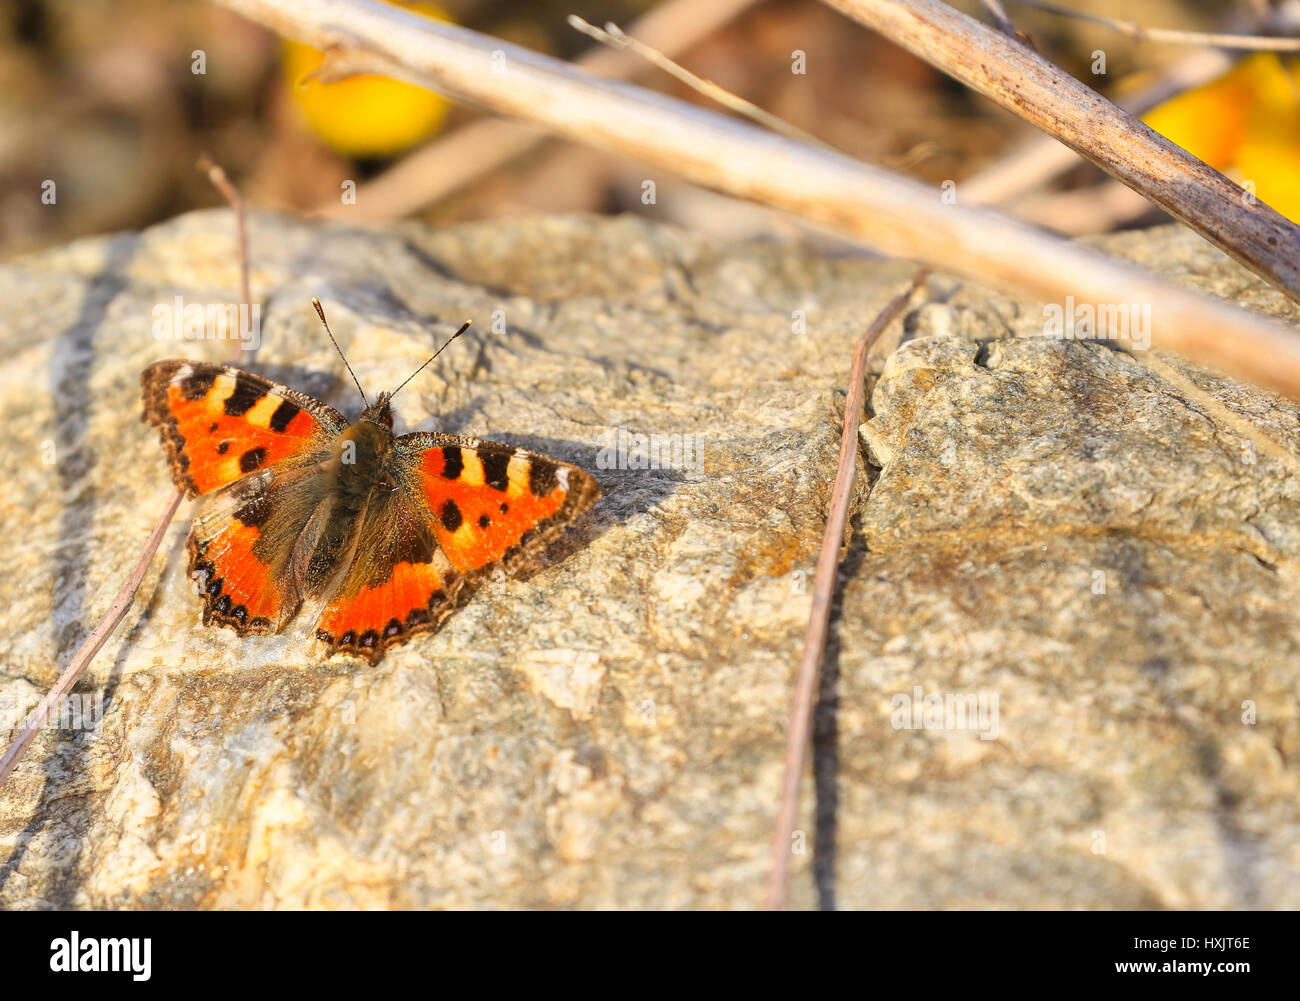 Smart Tortoiseshell relaxing on a stone in the sun. - Stock Image